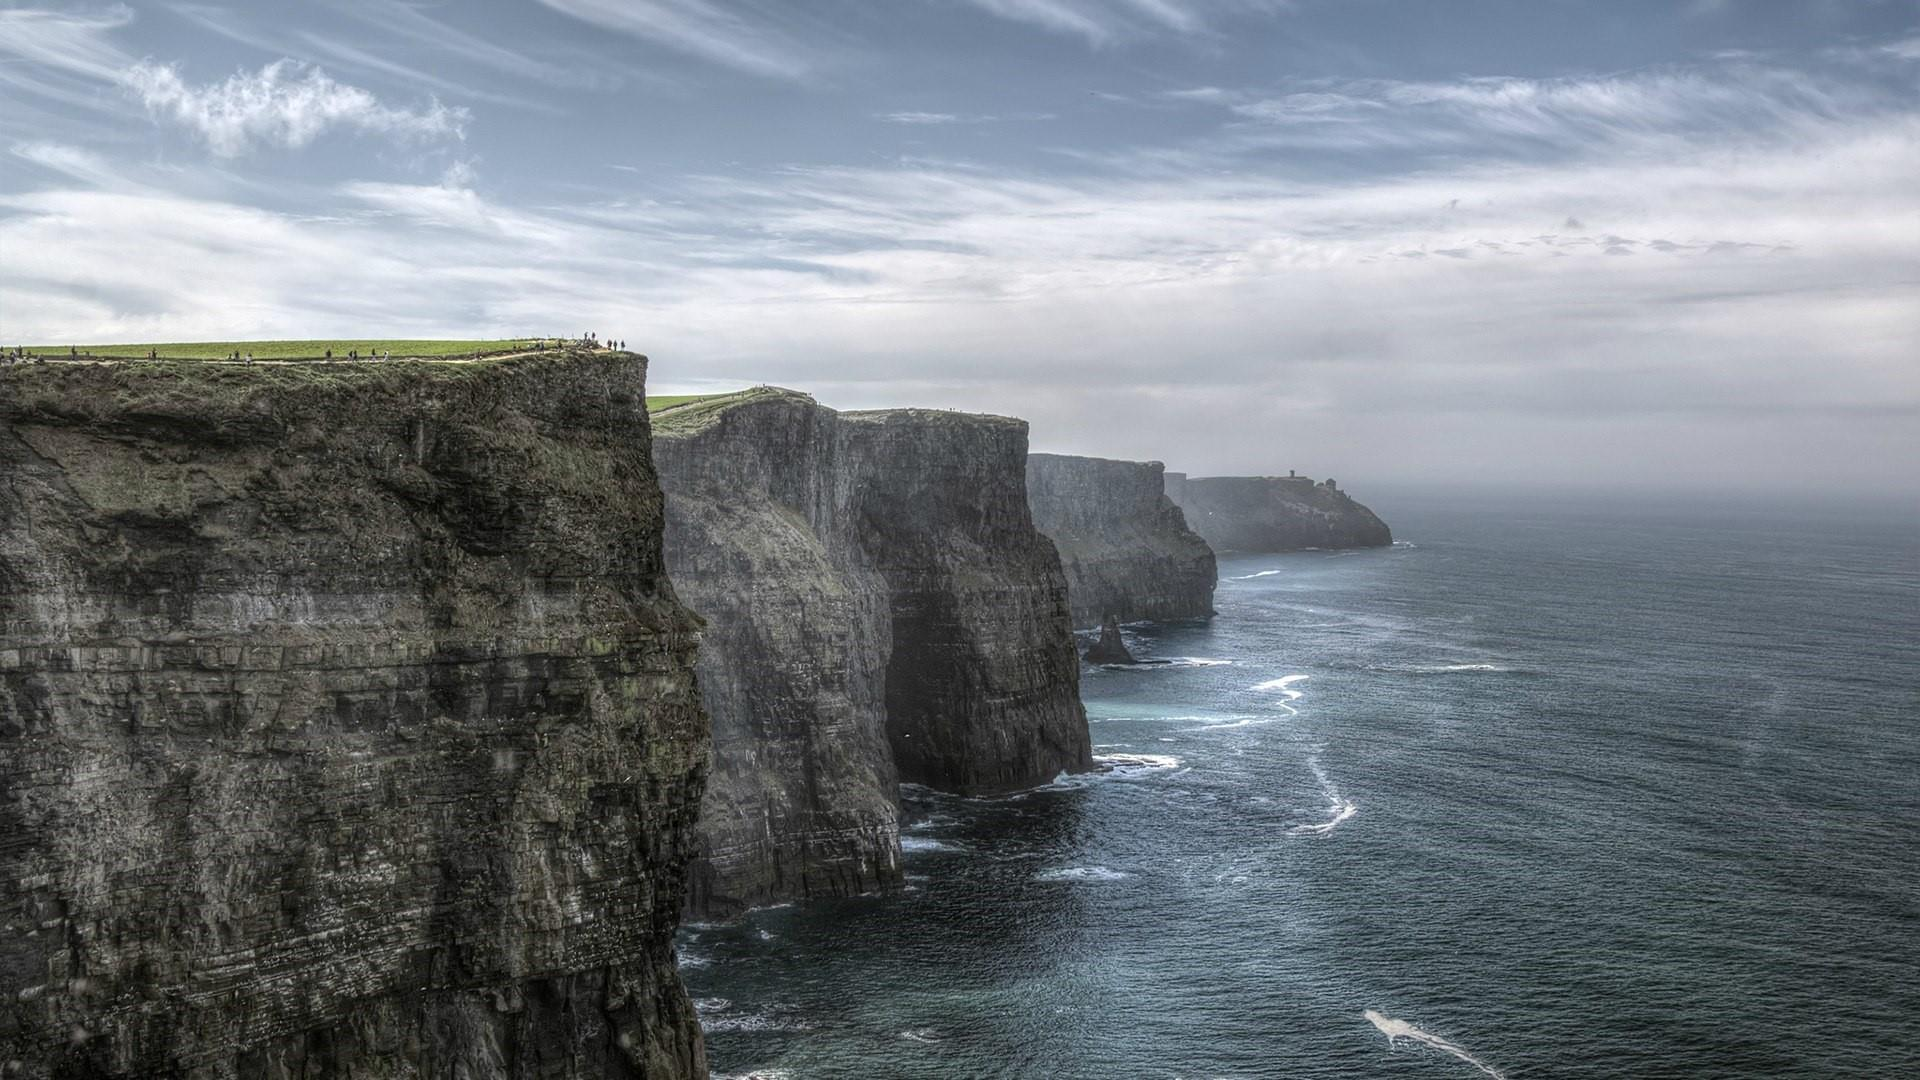 Cliffs of Moher Wallpapers and Background Images - stmed.net